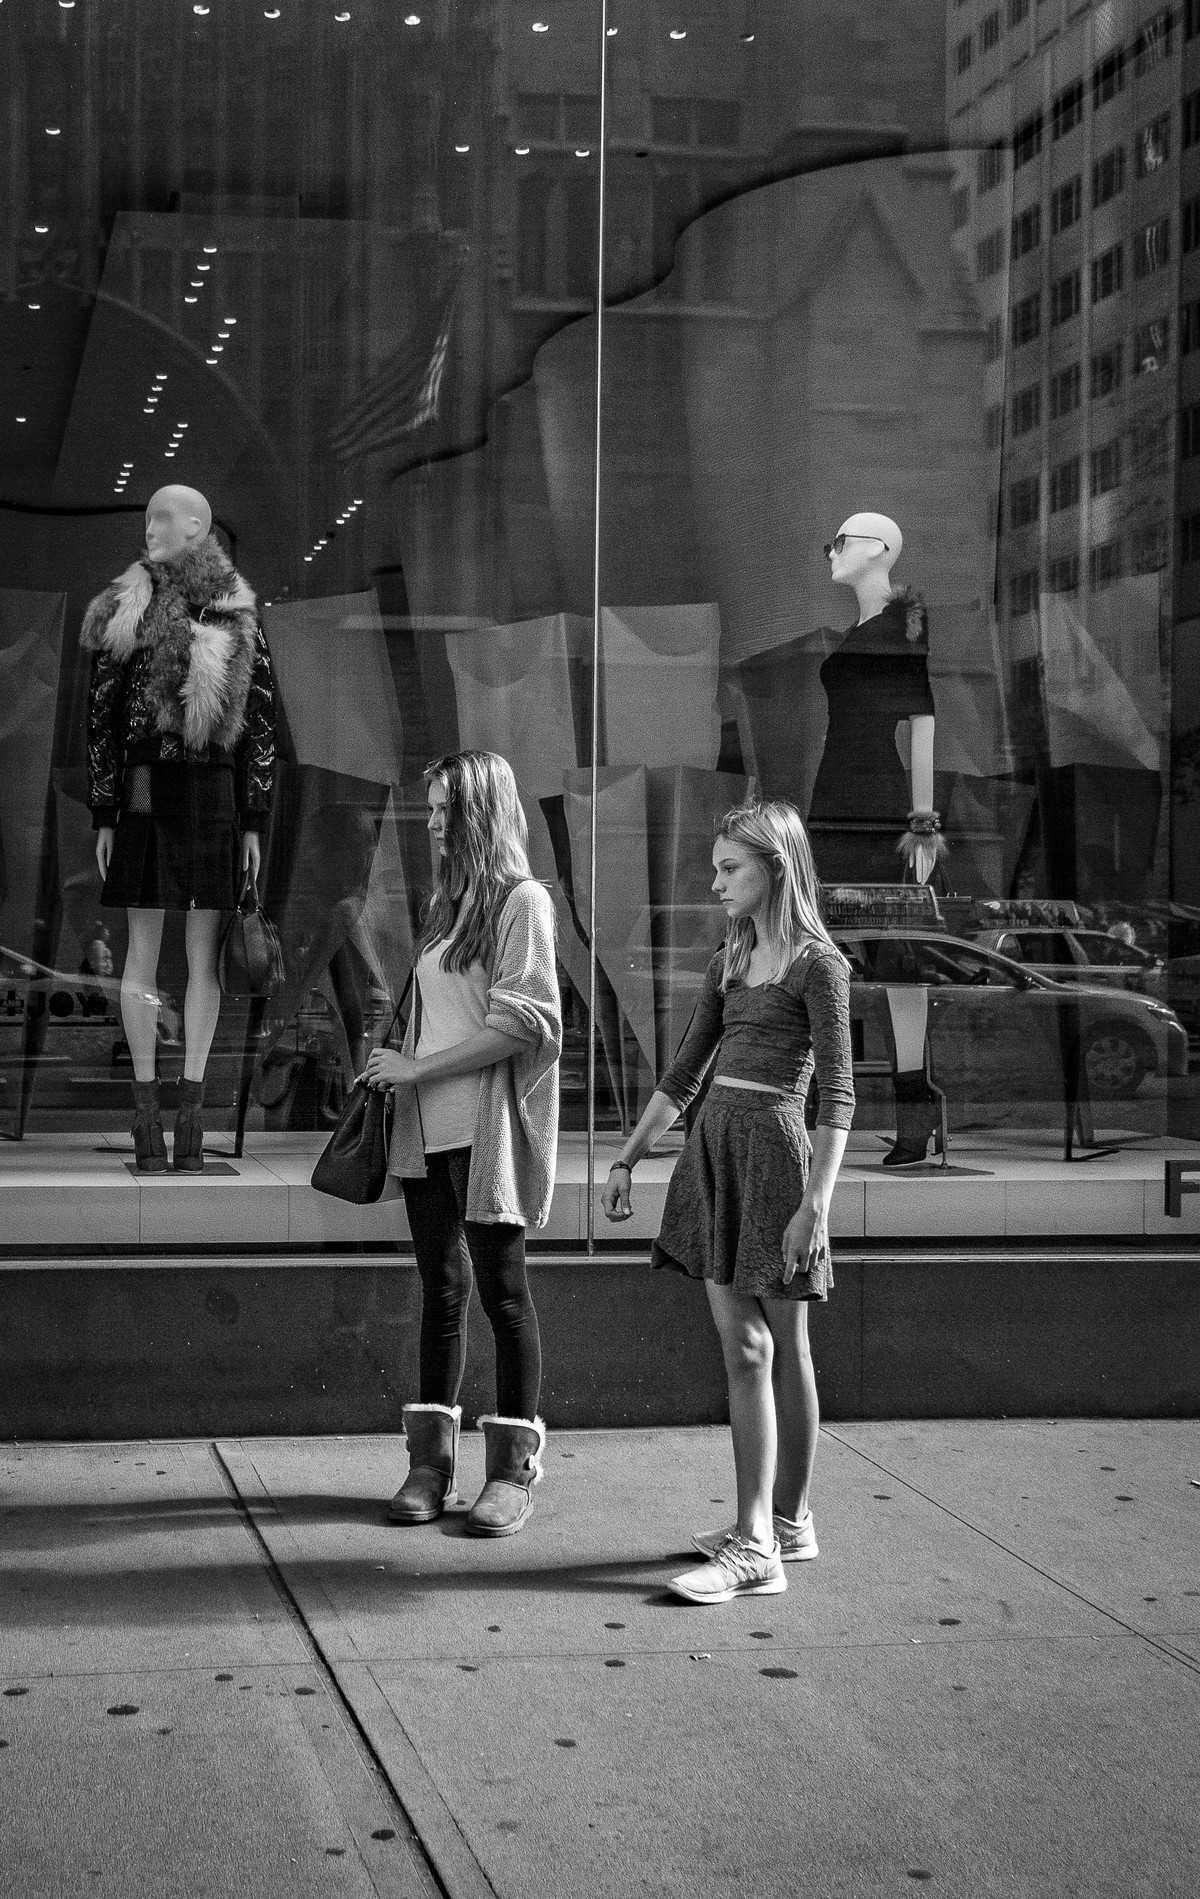 Mannequins- Fifth Avenue, NYC by SRIJAN NANDAN, Image Photography, Digital Print on Archival Paper,